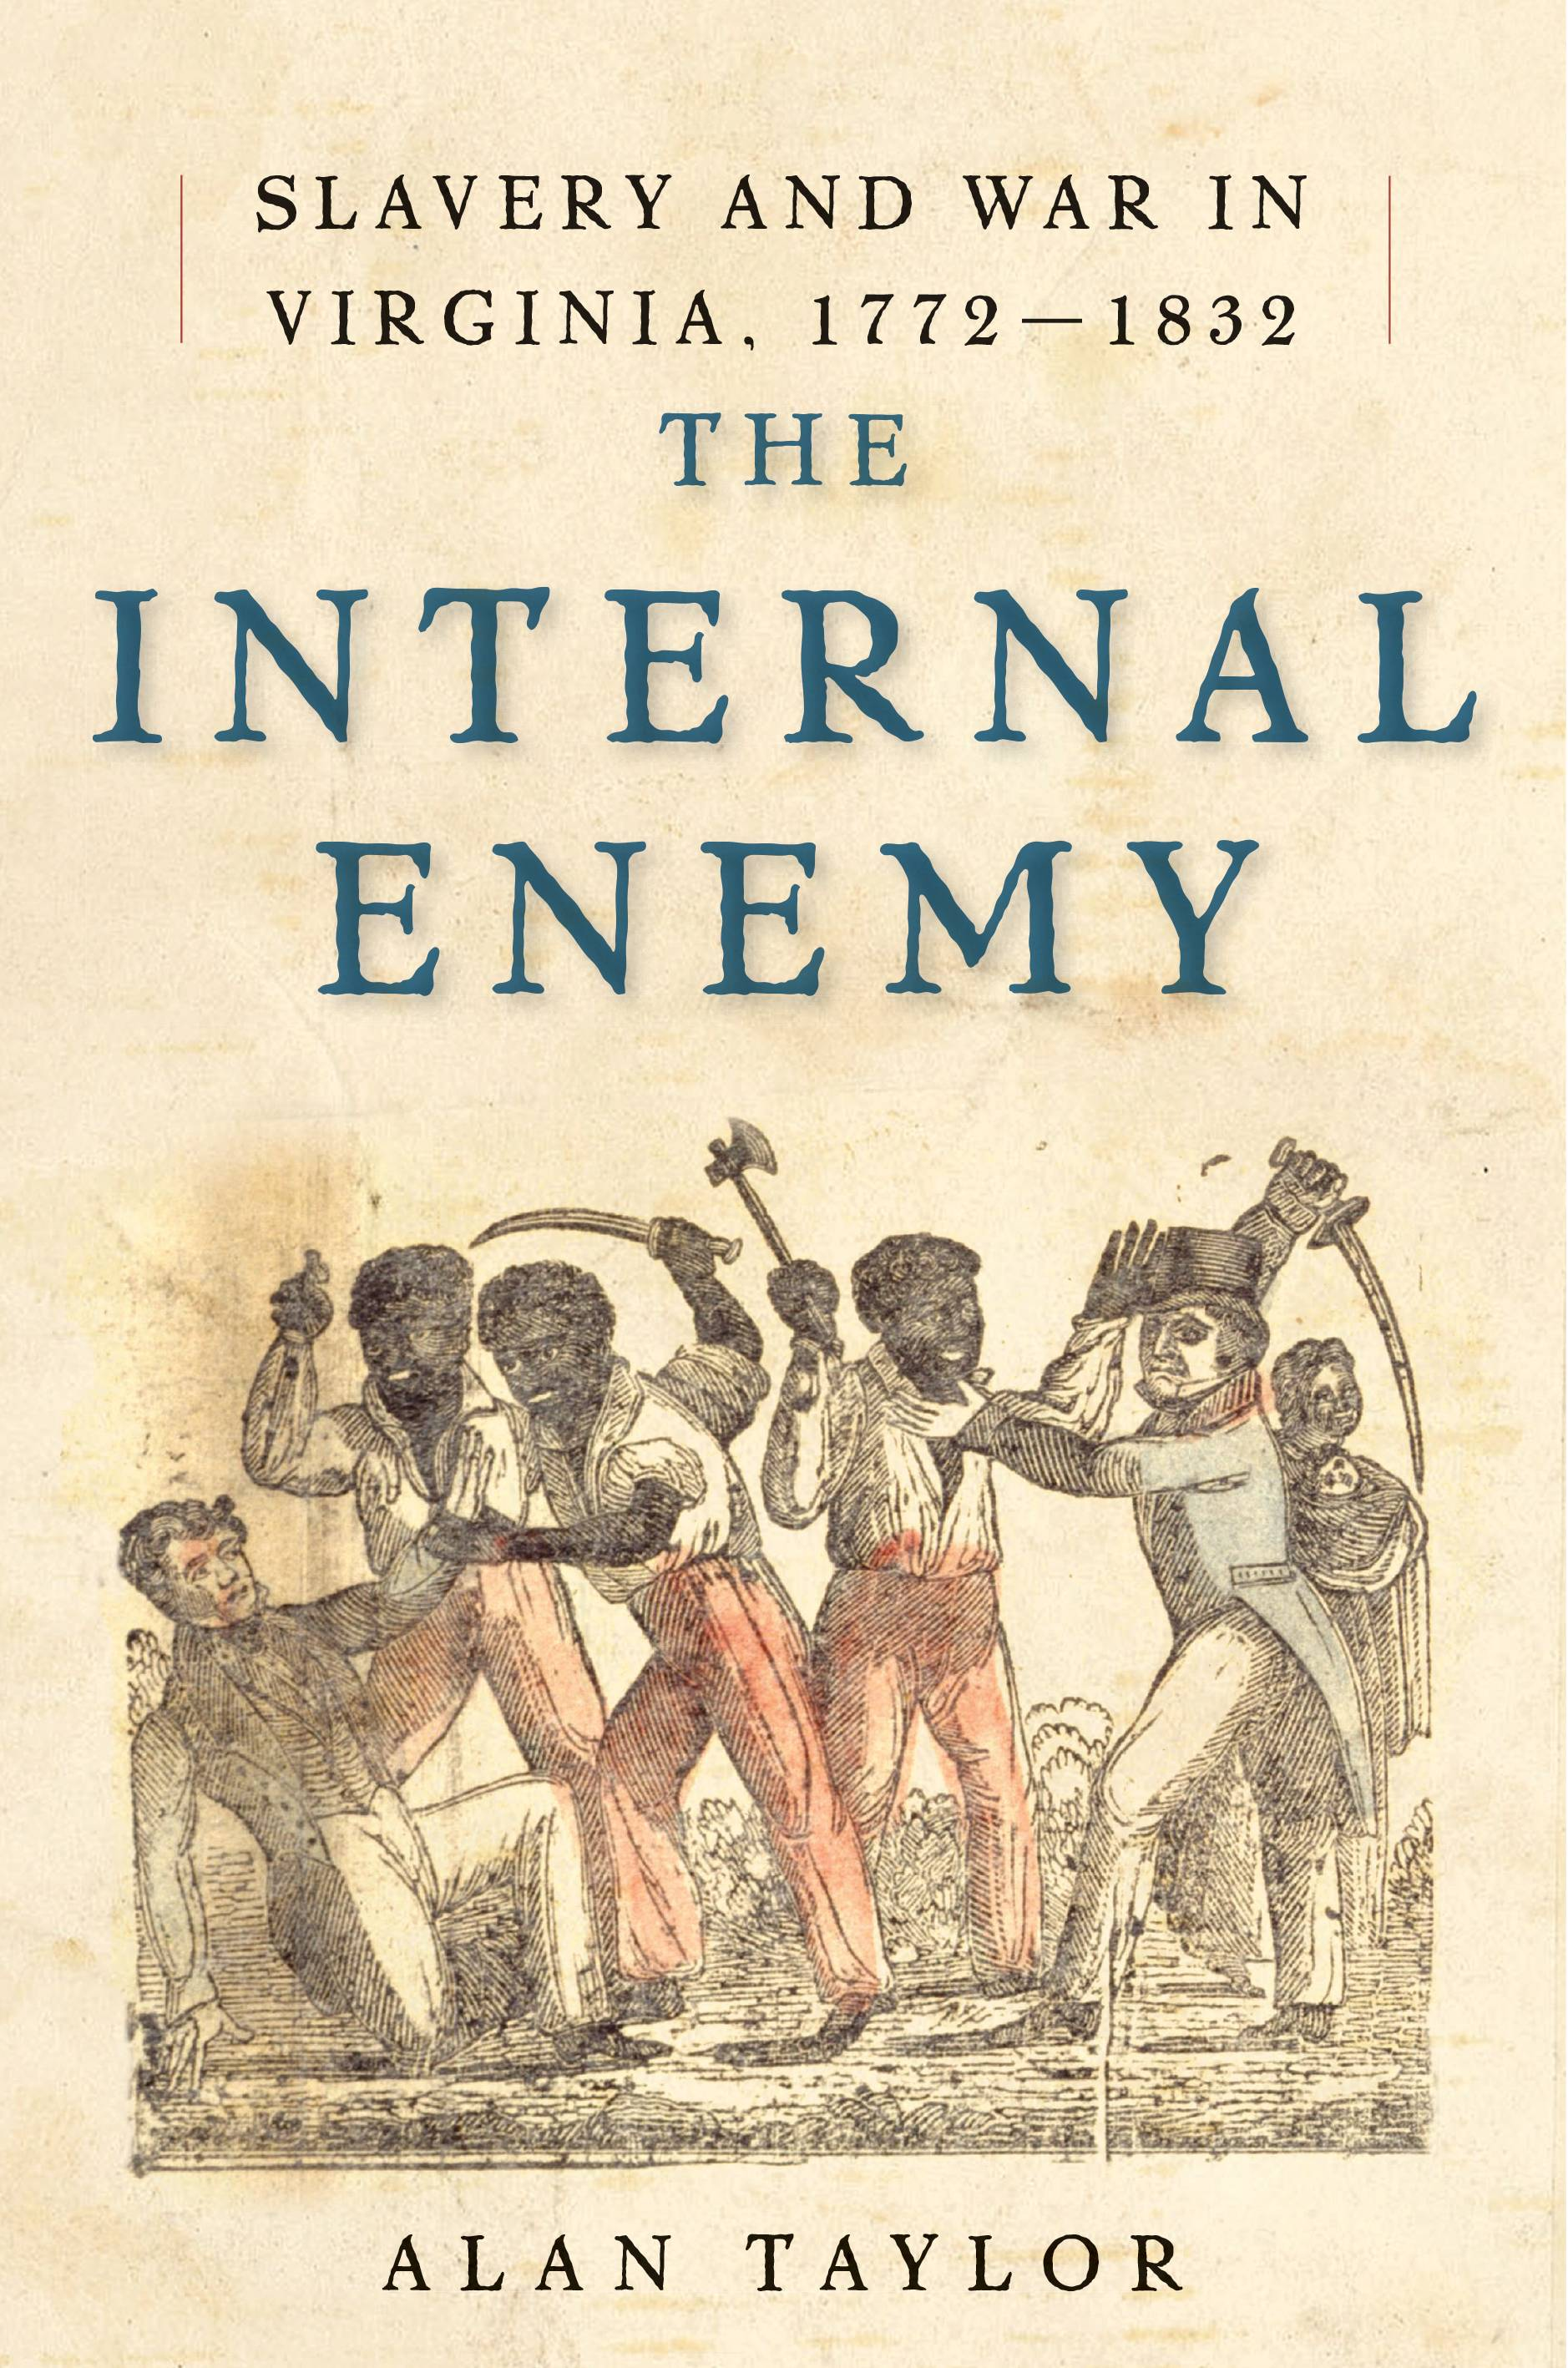 """The Internal Enemy: Slavery and War in Virginia, 1772-1832"" by Alan Taylor, winner of the Pulitzer Prize for history"